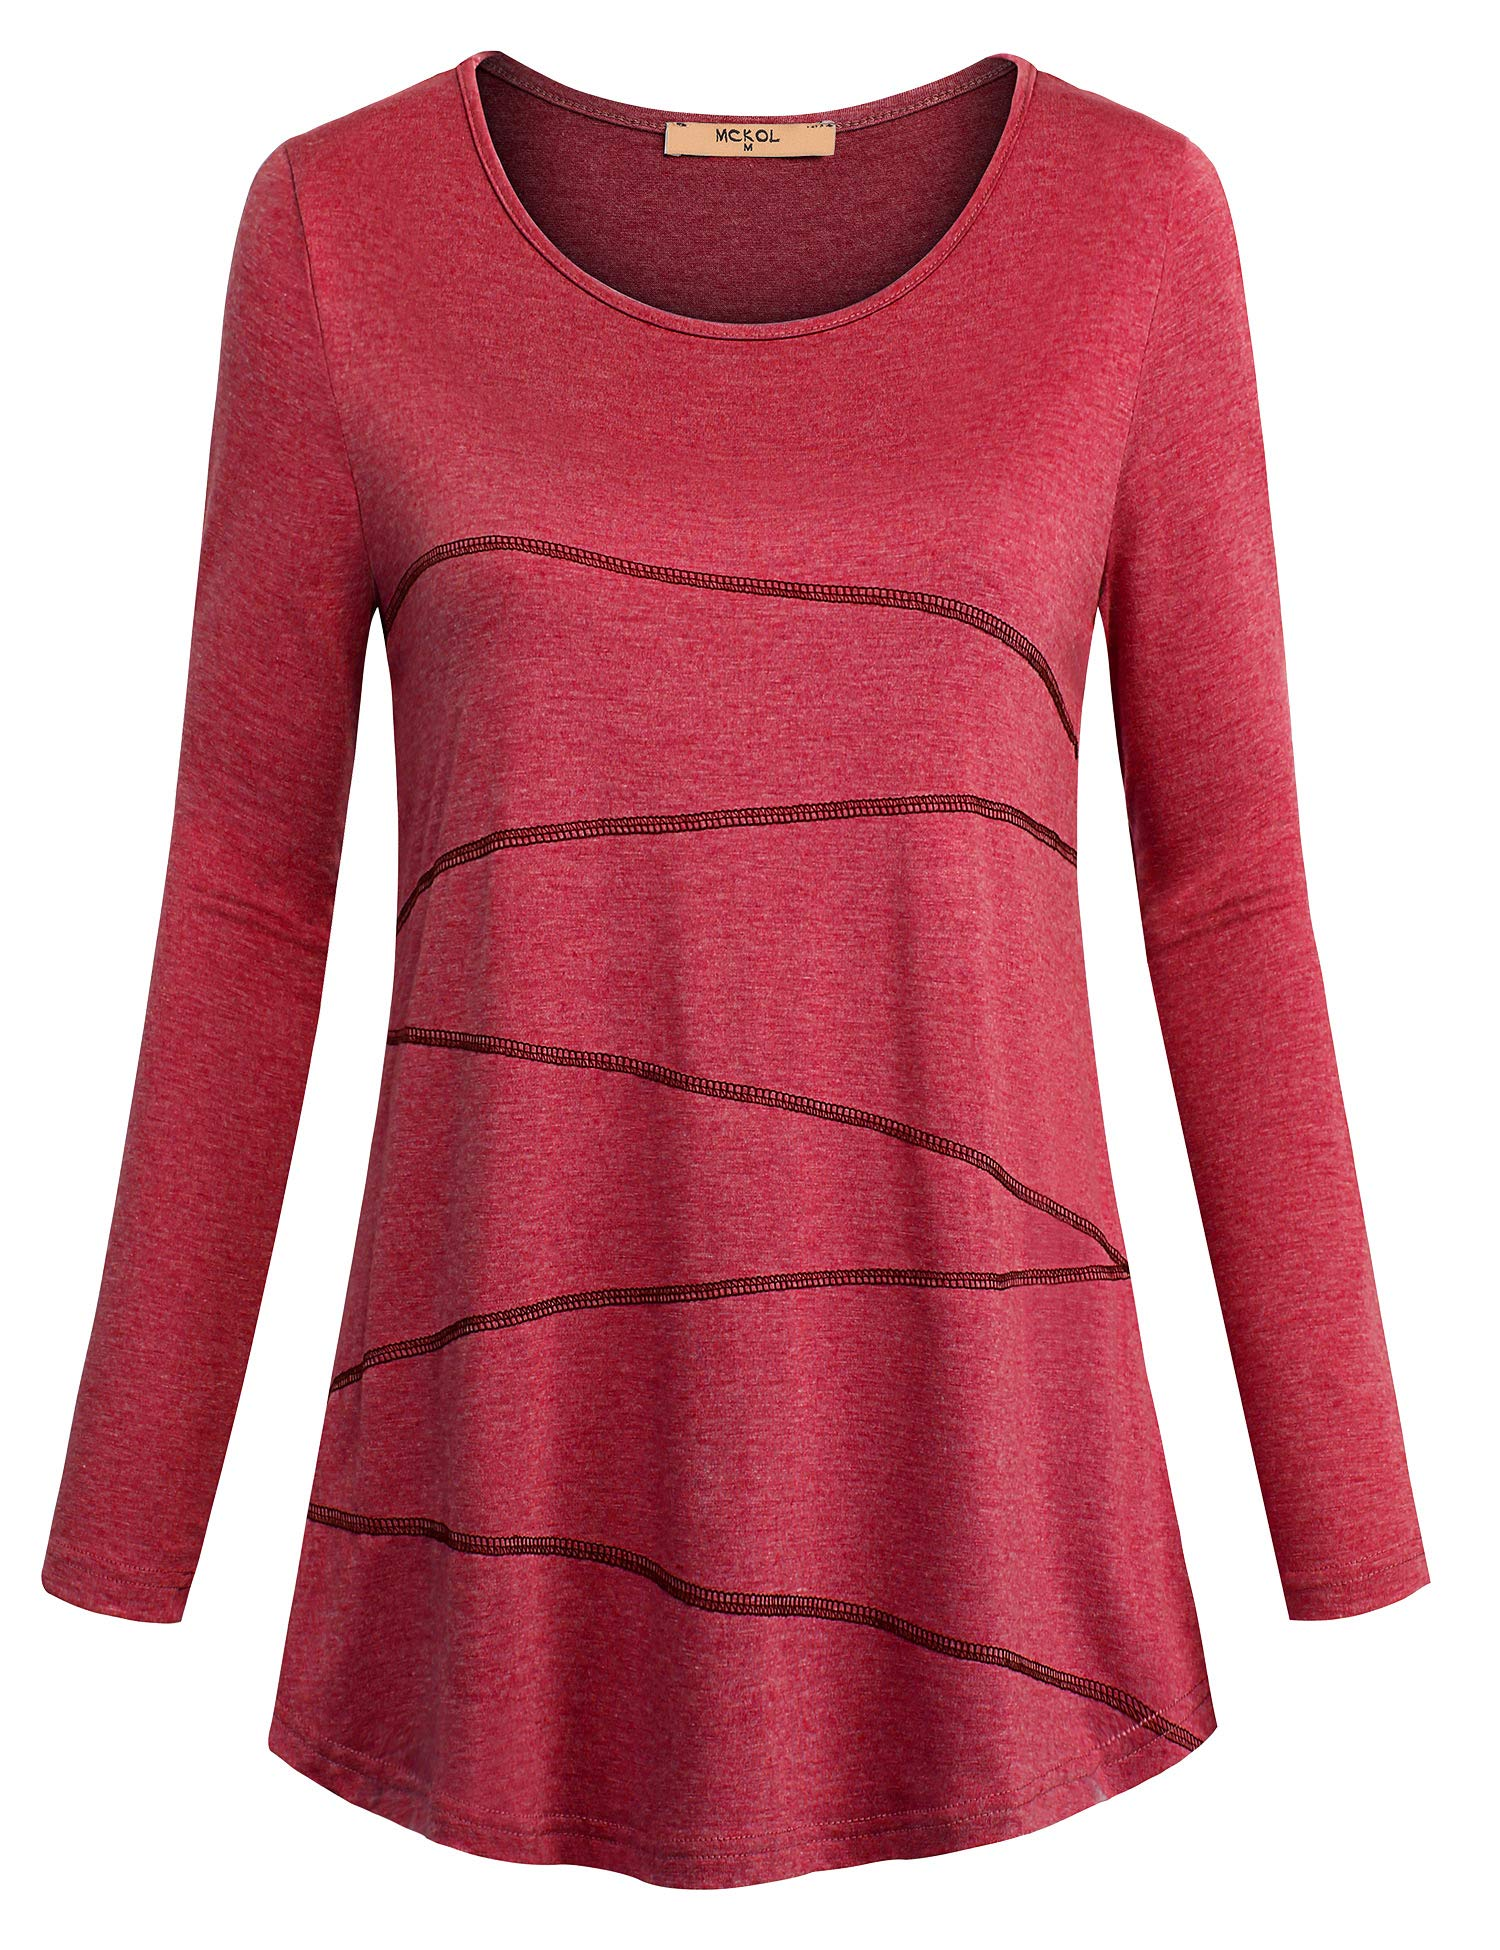 MCKOL Women Casual Shirts, Long Sleeve Shirts Chiffon Splicing Irregular Hem Comfy Tunic Tops(Wine Red,X-Large